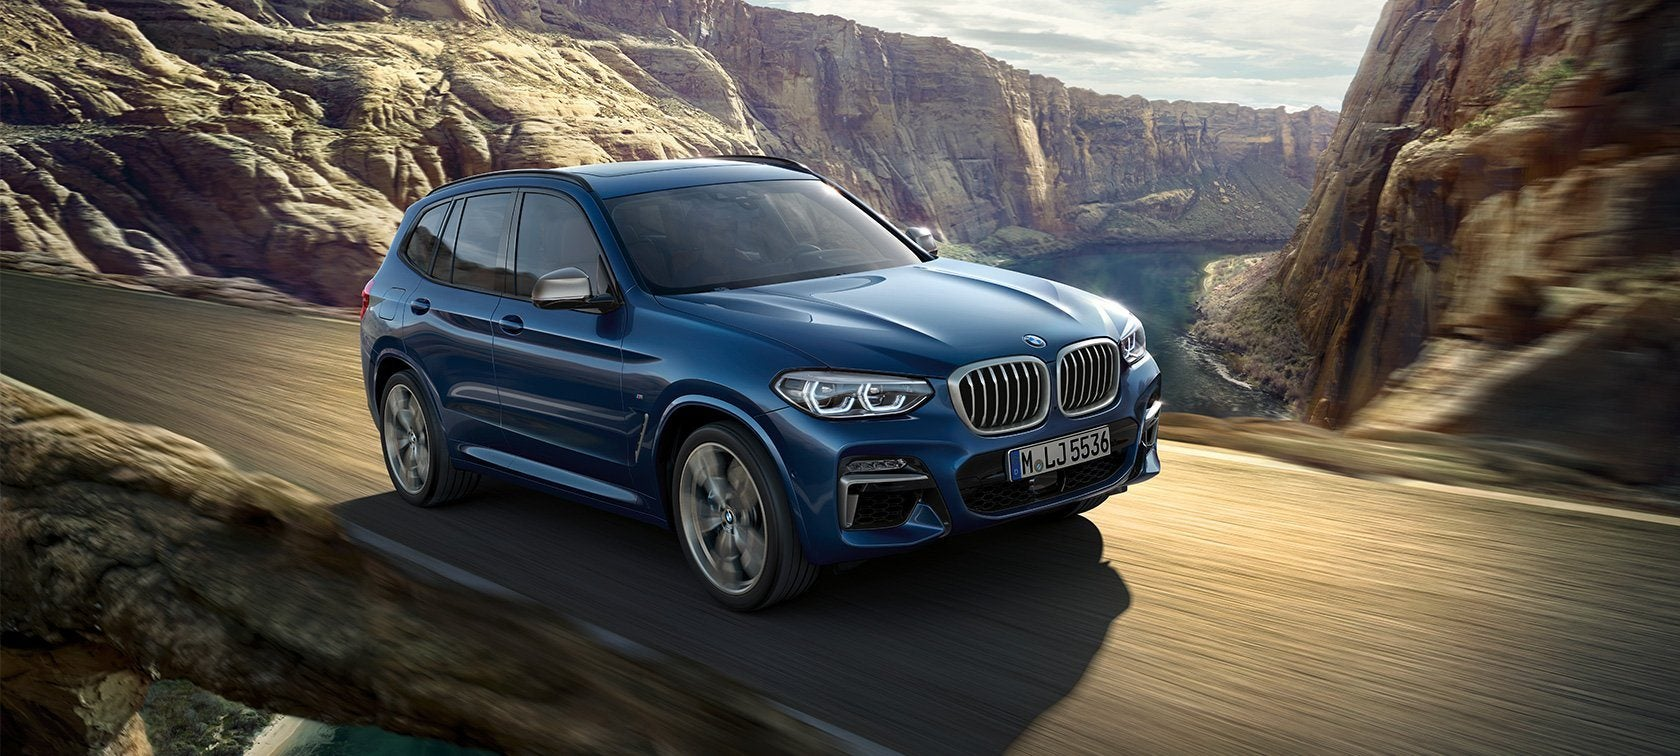 Test Drive A Bmw From Home Or Office